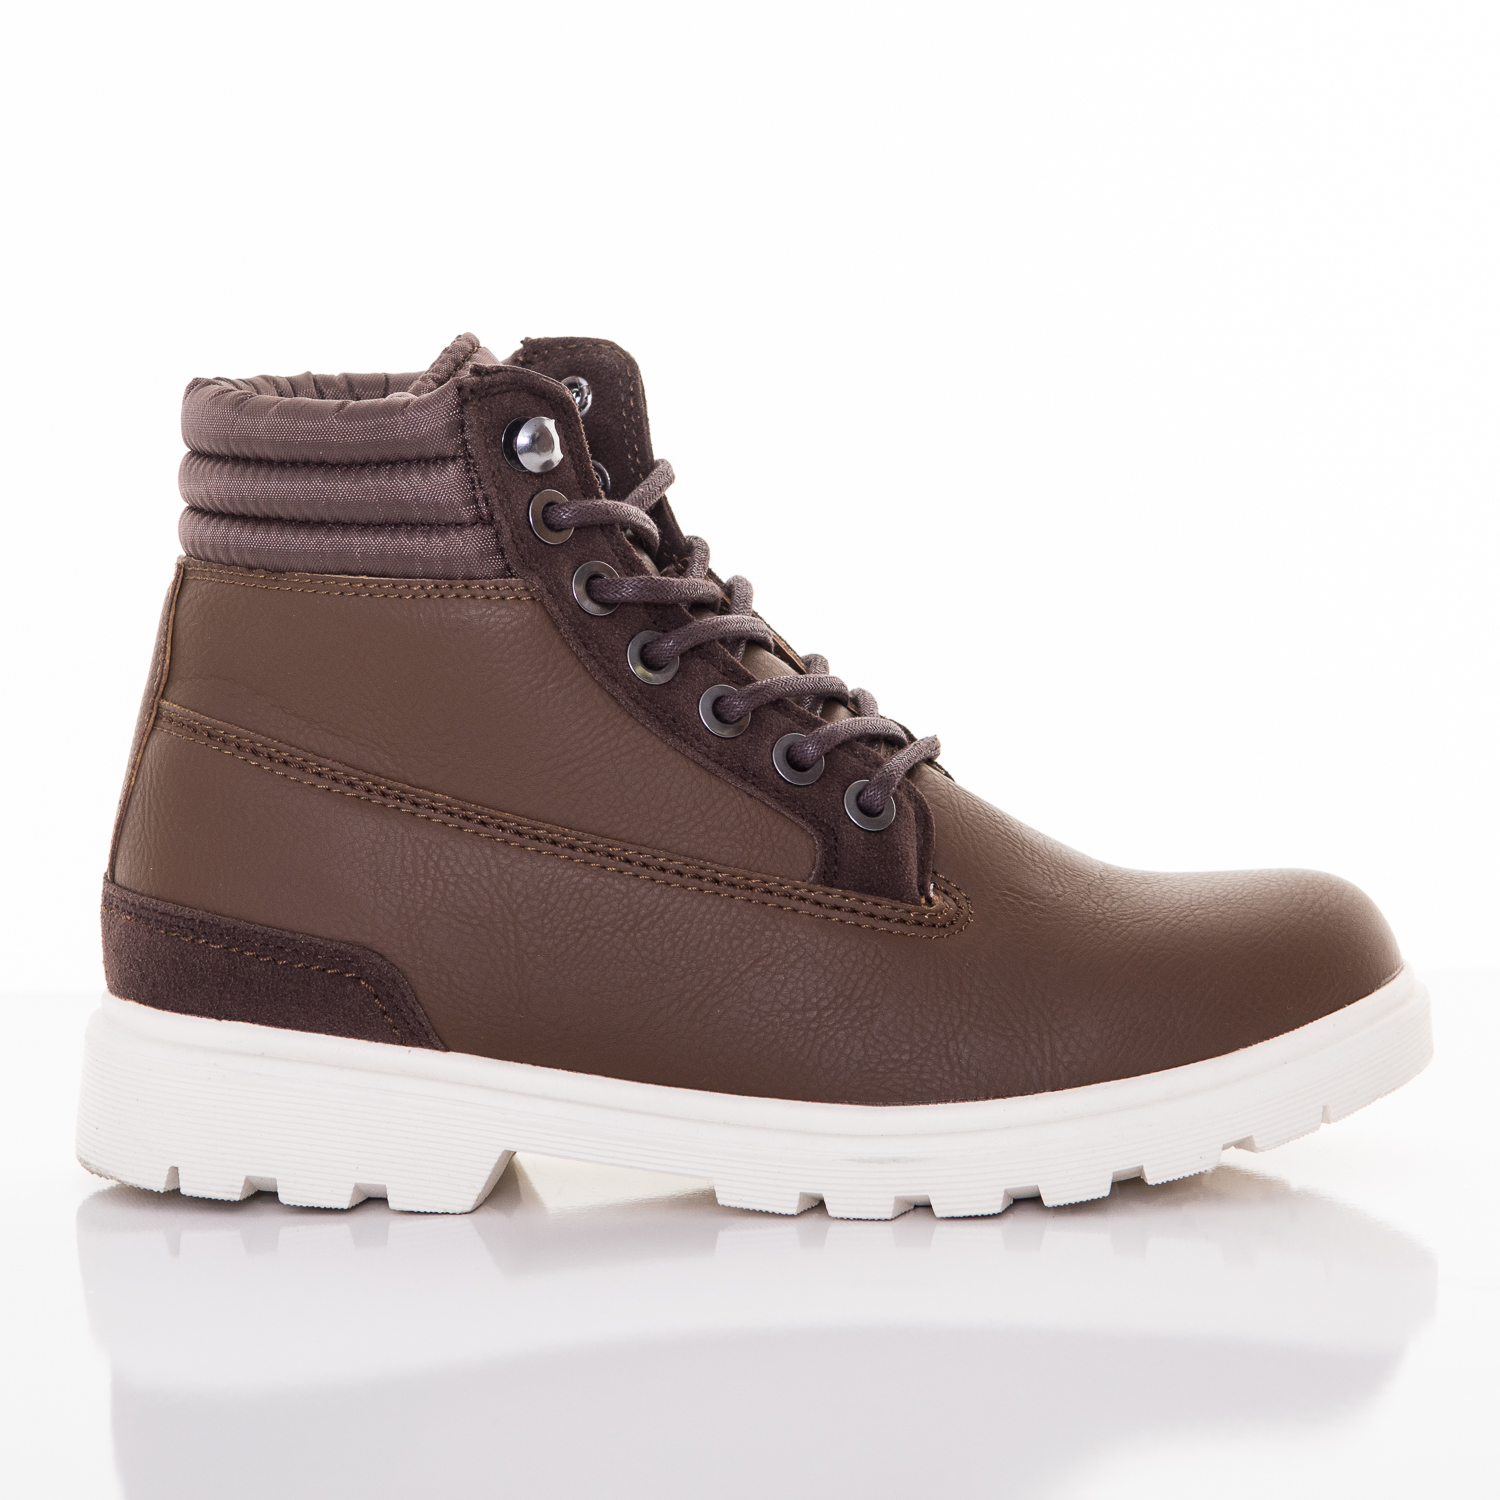 Zimná obuv Urban Classics Winter Boots Brown Darkbrown 44